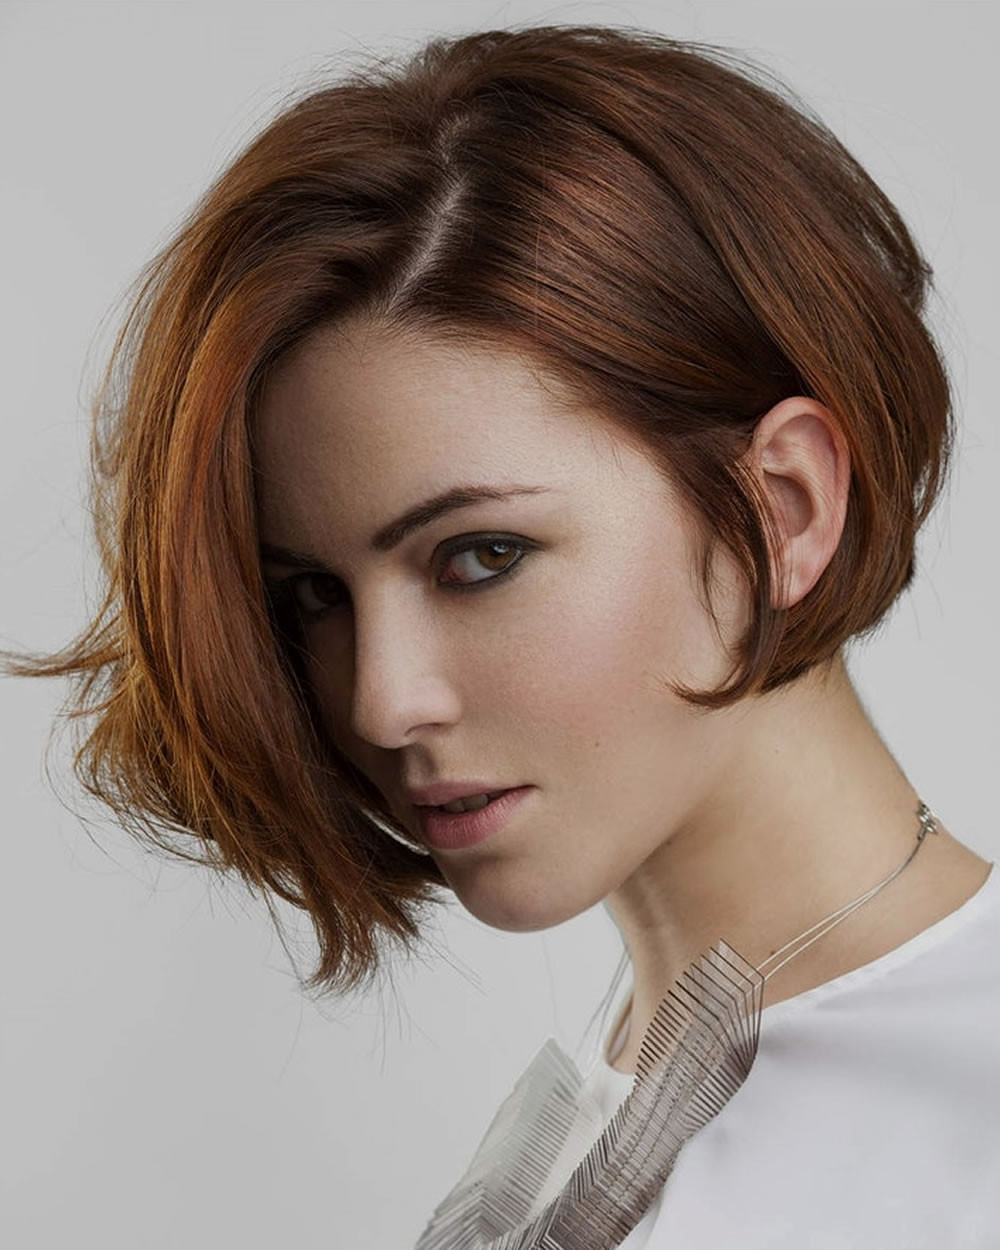 33+ Most Stylish Short Curly Hairstyles & Haircuts For Women Pertaining To Short Bob For Curly Hairstyles (View 8 of 20)